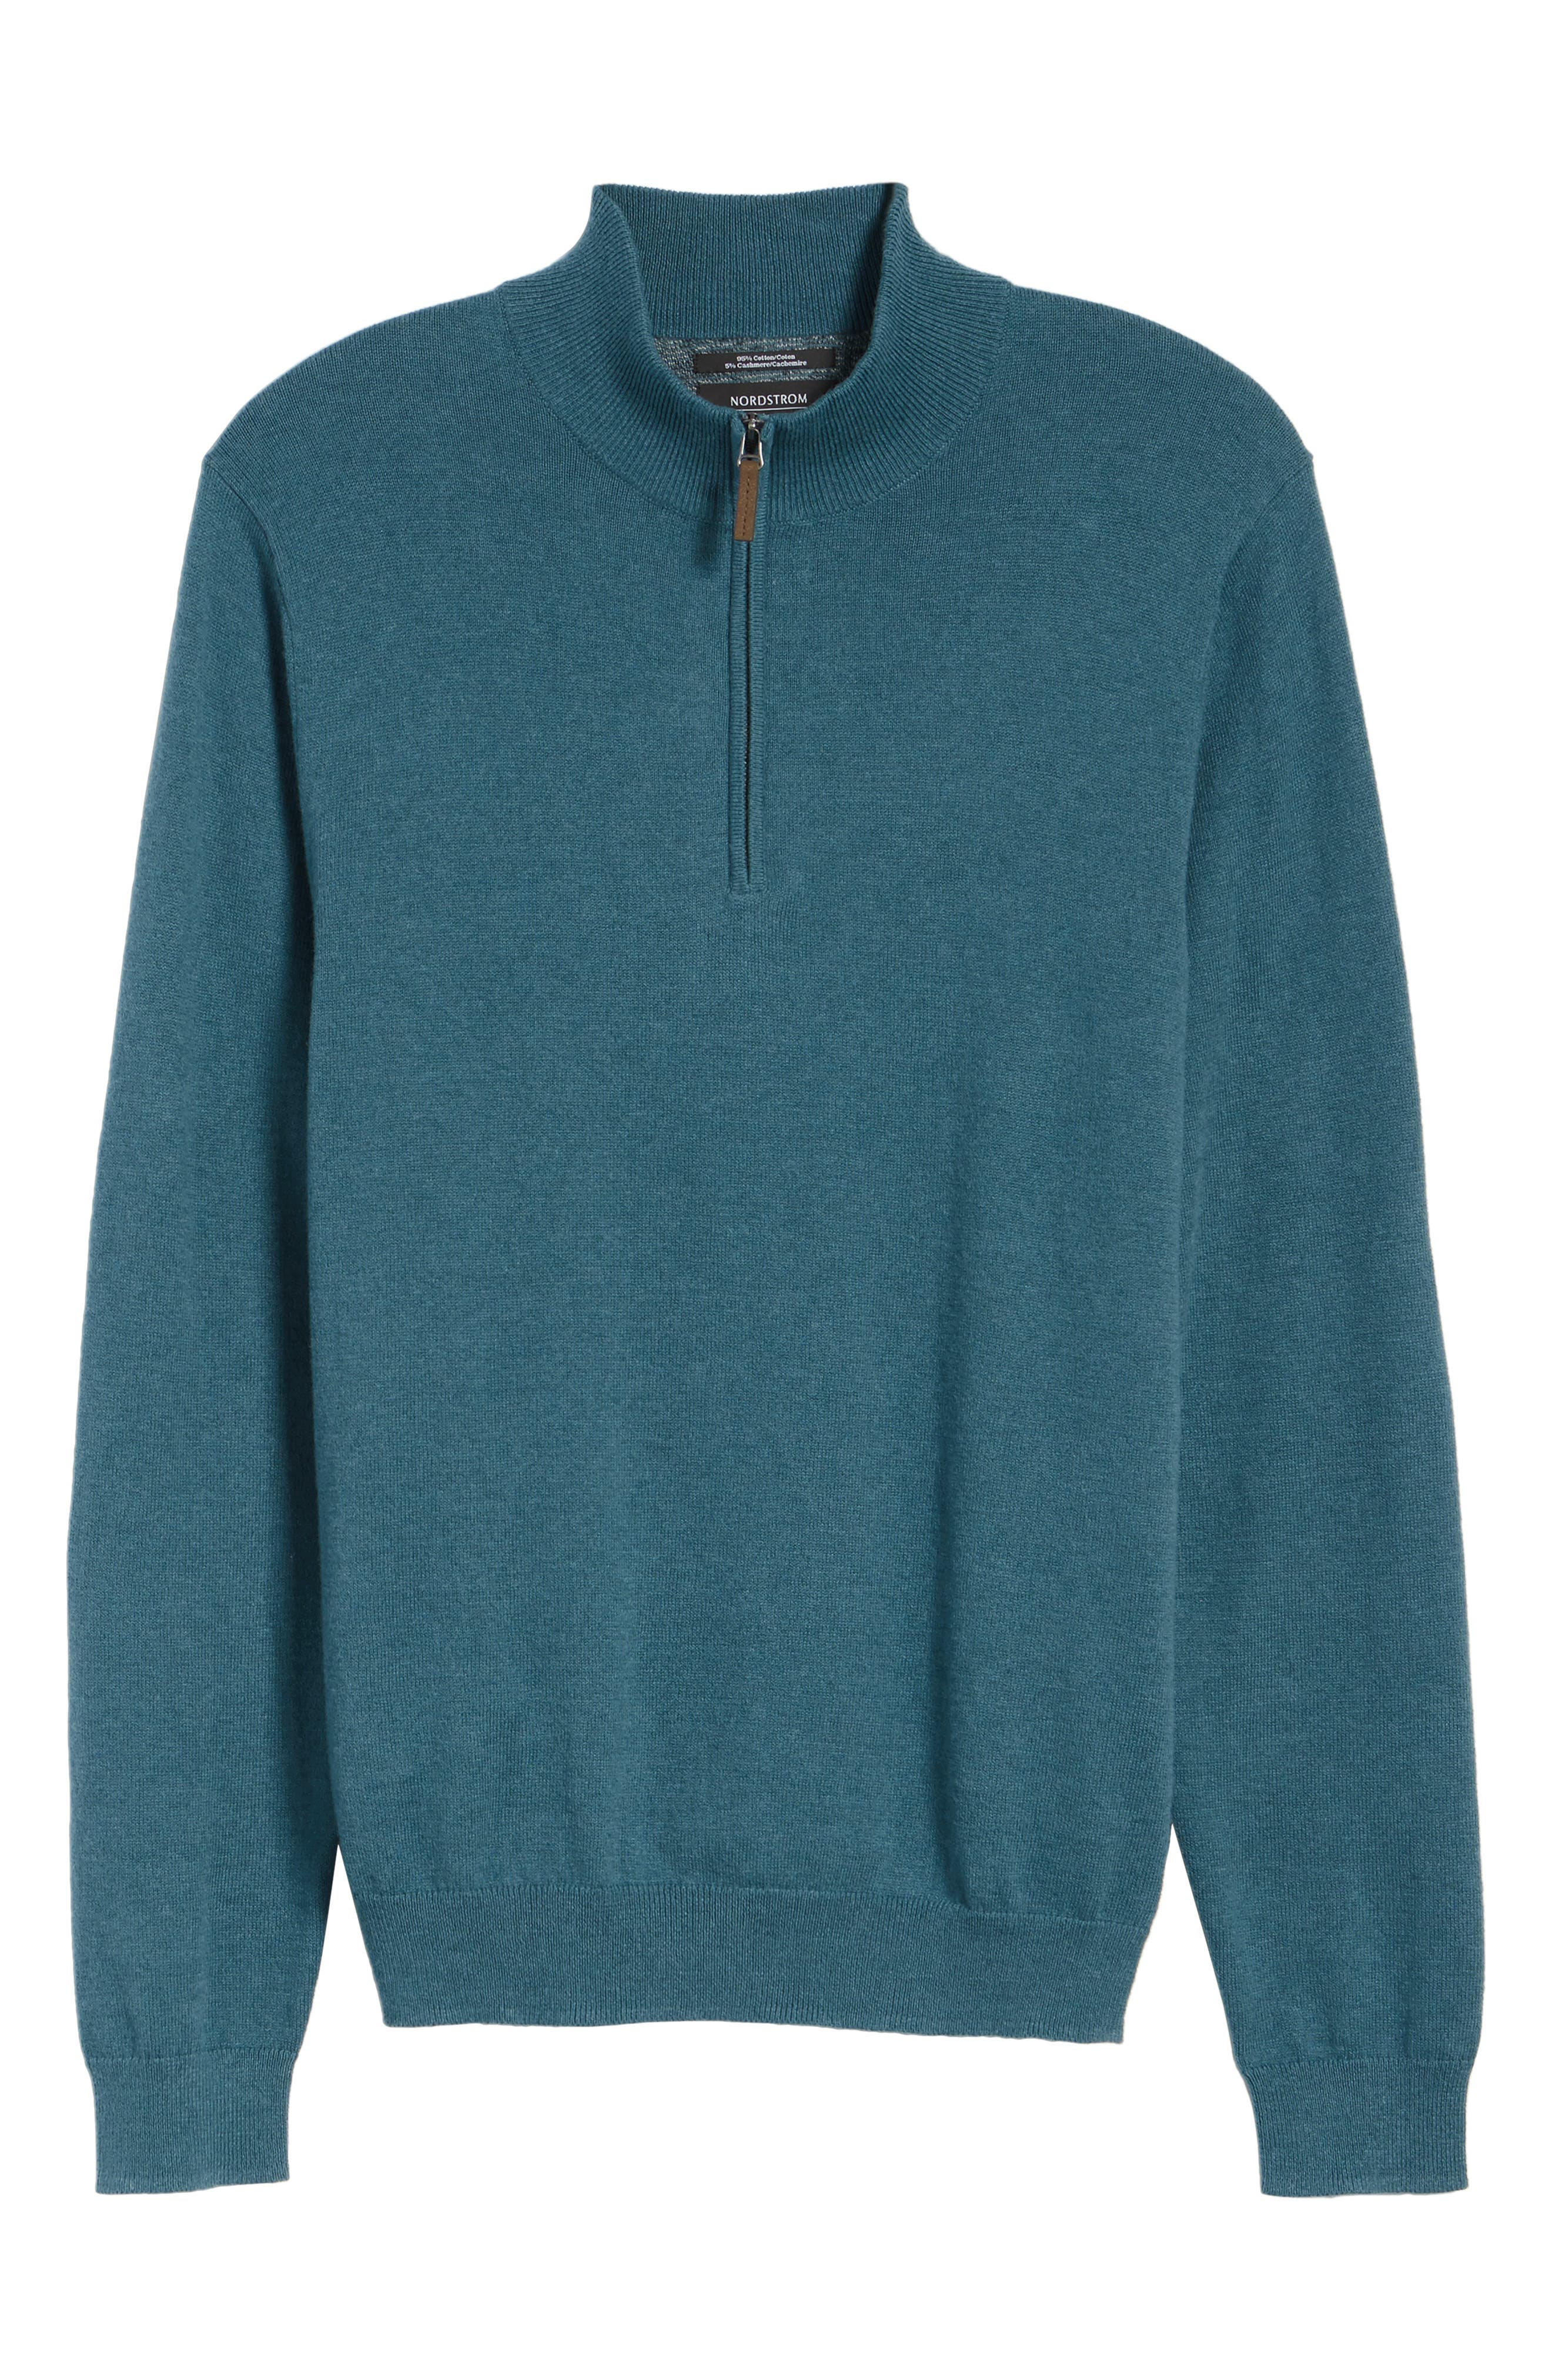 Half Zip Cotton & Cashmere Pullover,                             Alternate thumbnail 6, color,                             Teal Moroccan